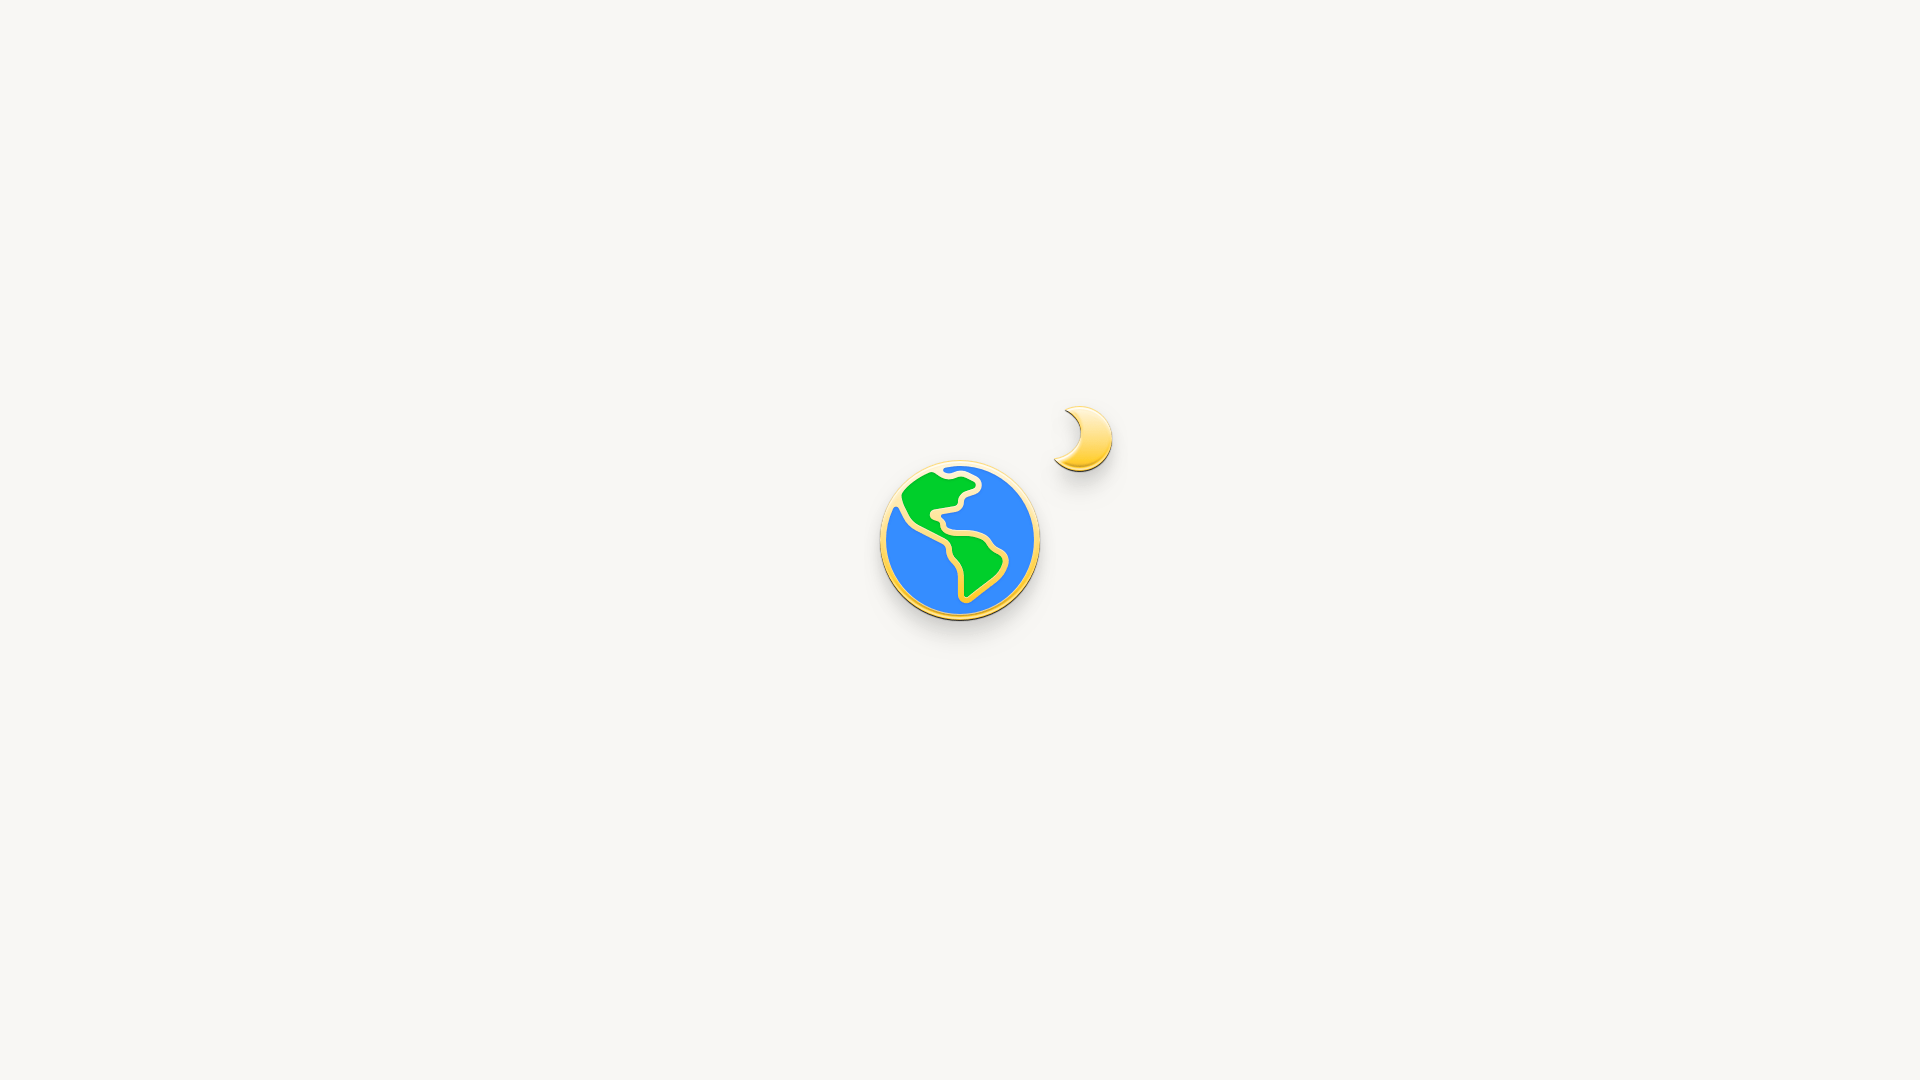 An illustration of the Earth in the style of an enamel pin, on a white background